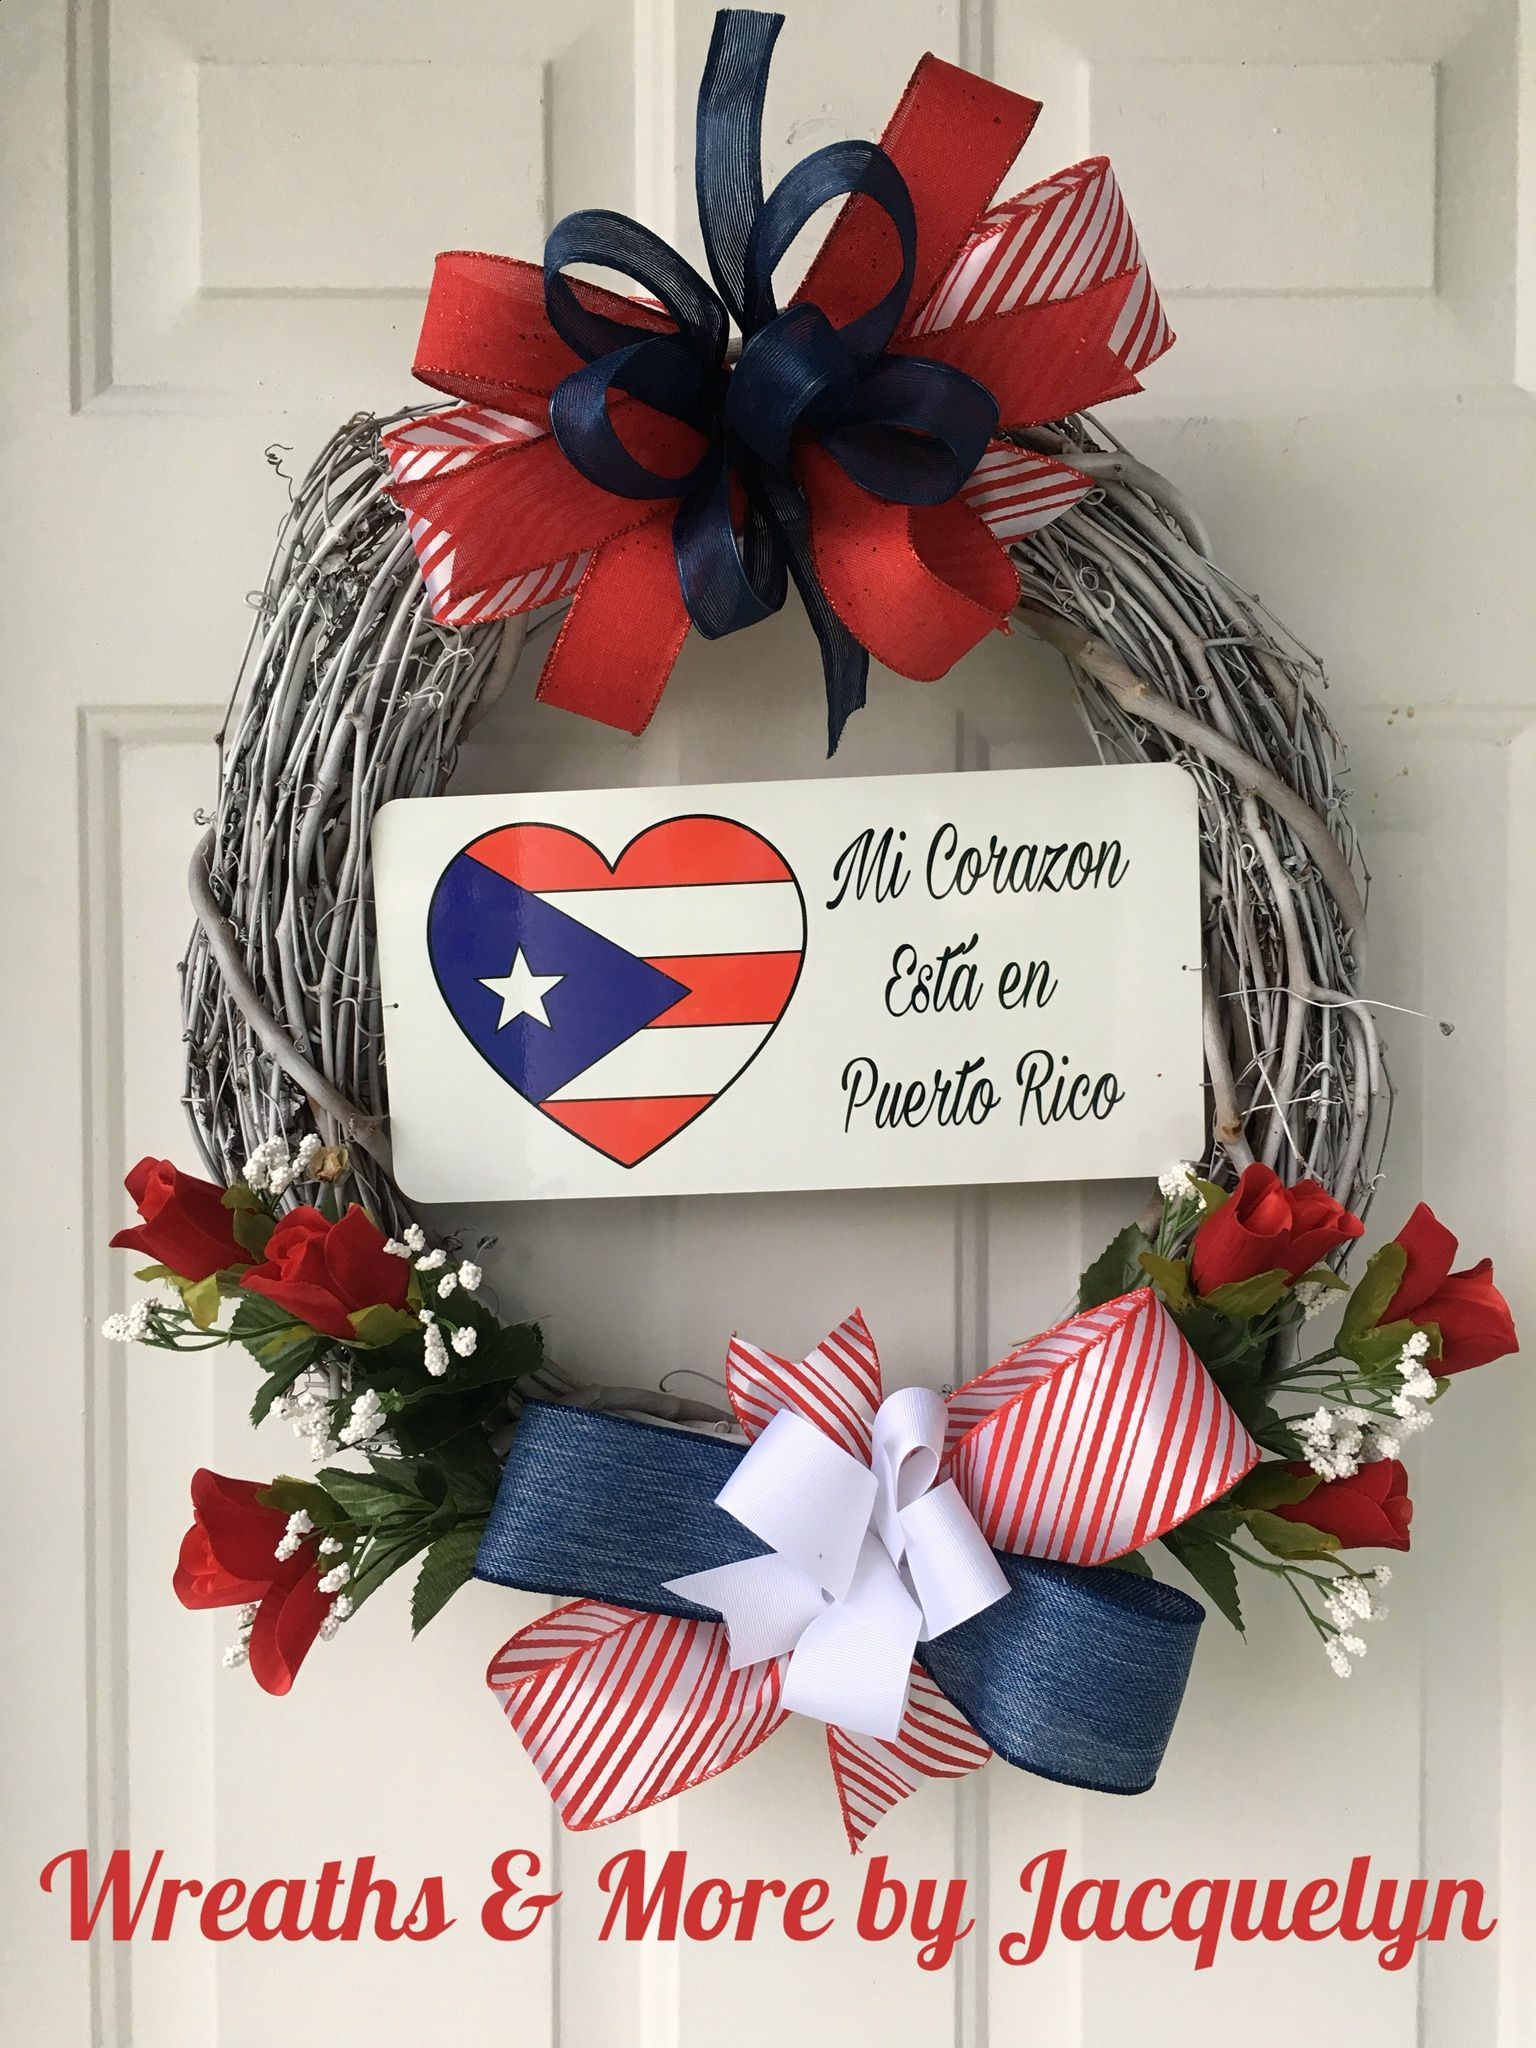 Puerto Rico Christmas 2020 This item is unavailable in 2020 | Christmas decorations, Flag